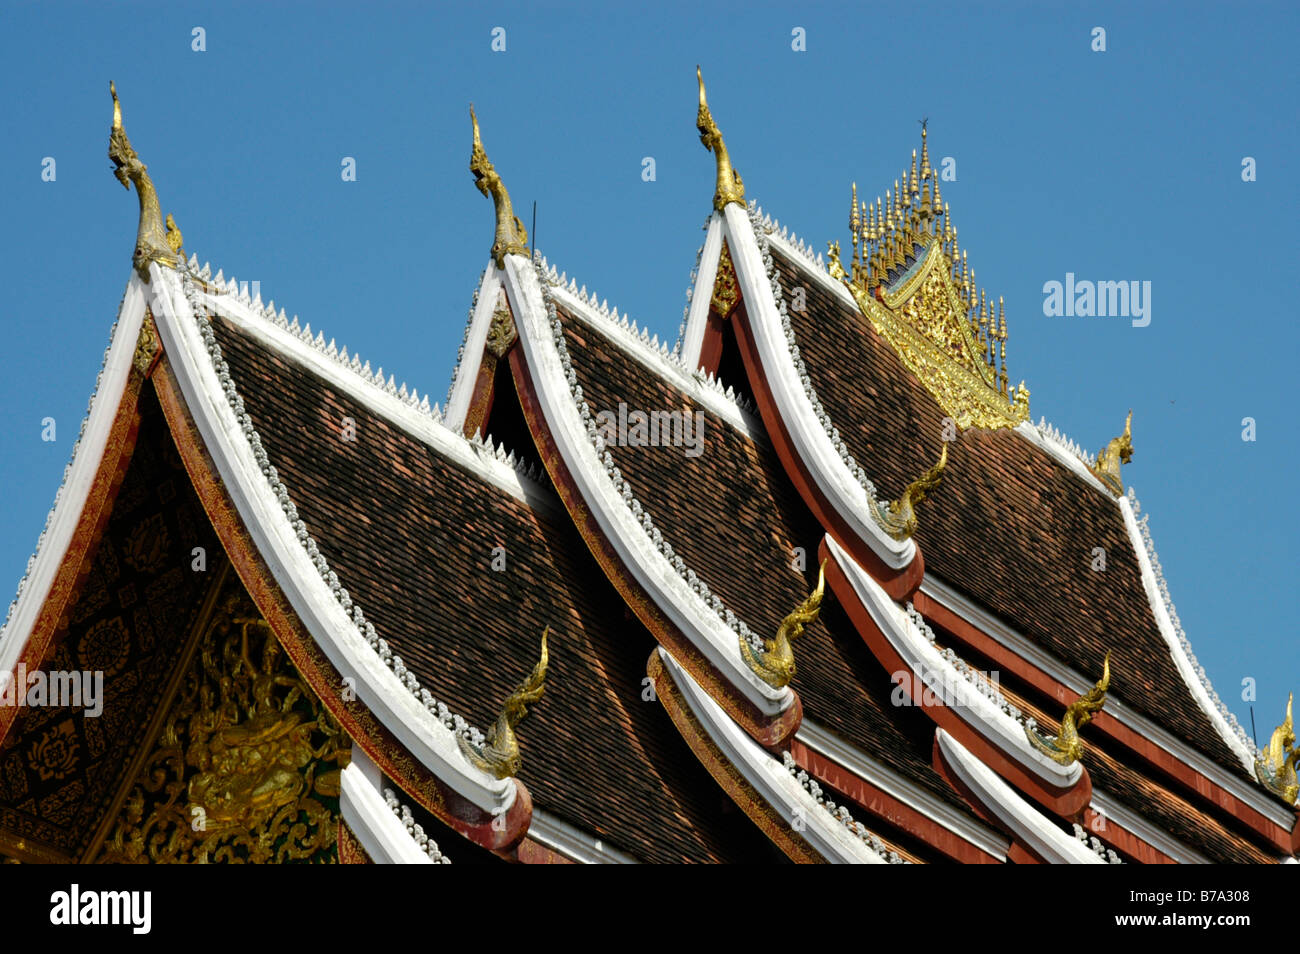 Segmented roof of the Haw Pha Bang Buddhist tempel inside the Royal Palace compound, Luang, Laos, Southeast Asia Stock Photo